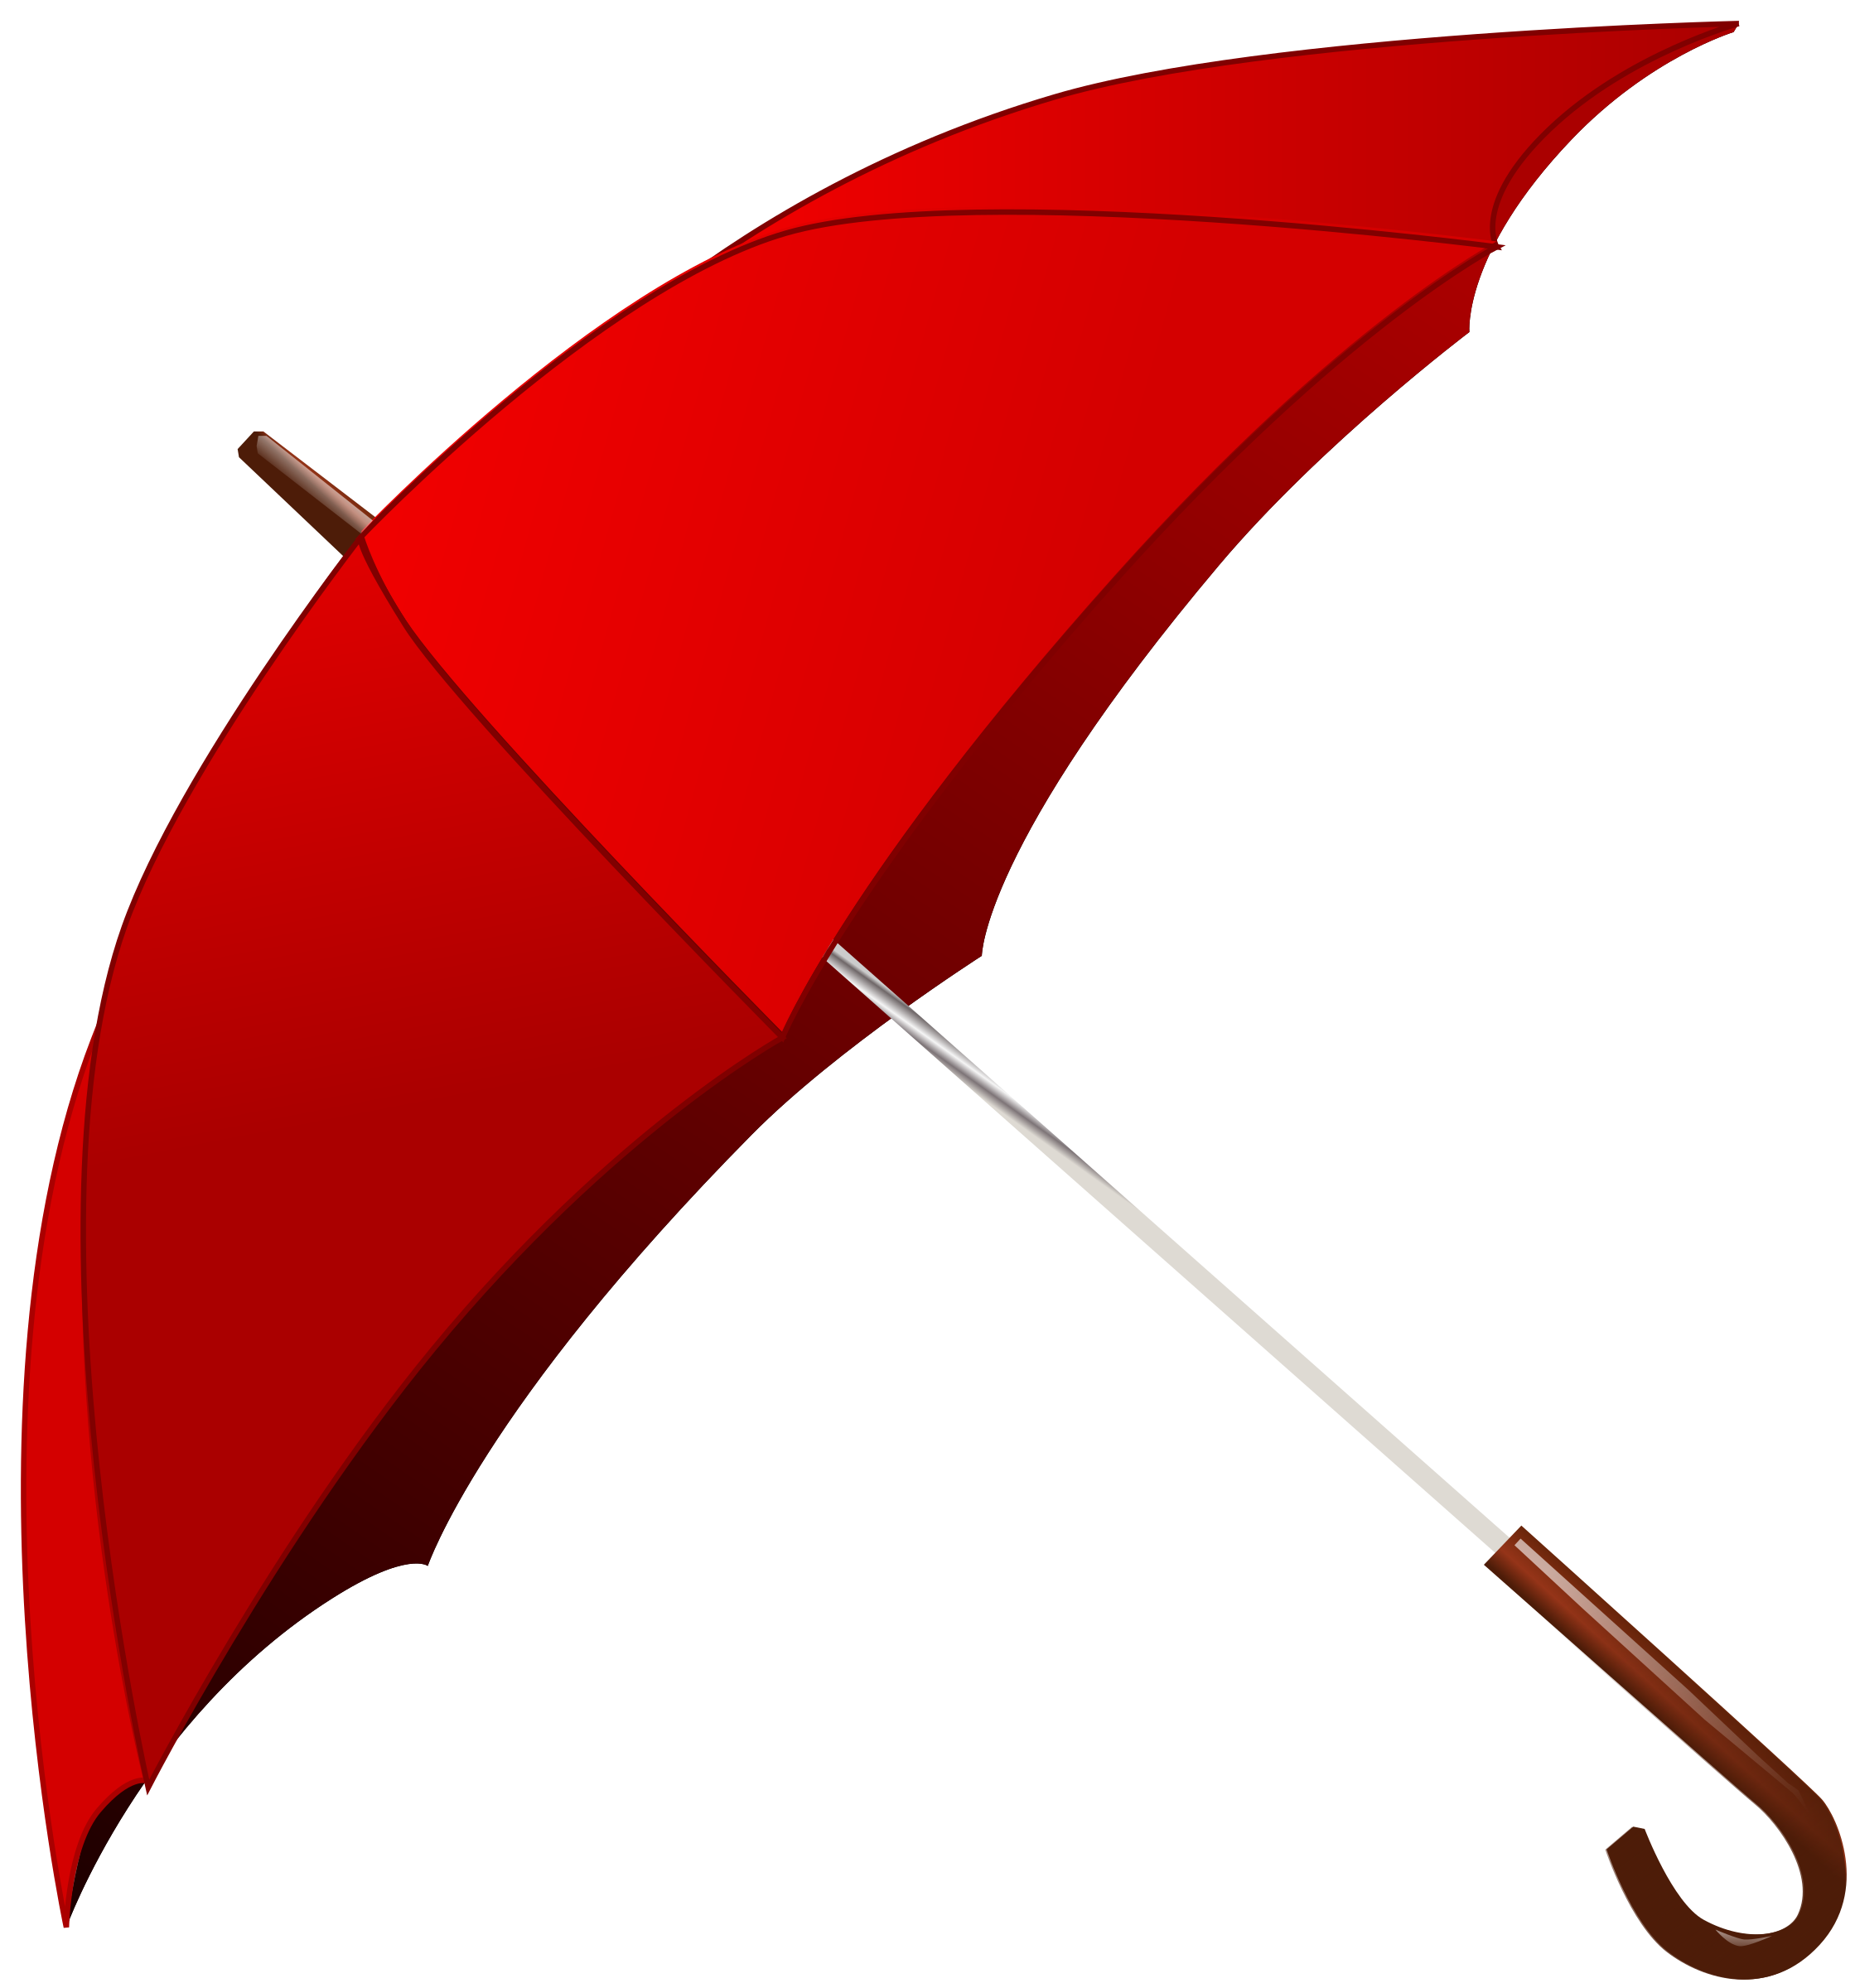 Umbrella PNG Images Transparent Free Download.